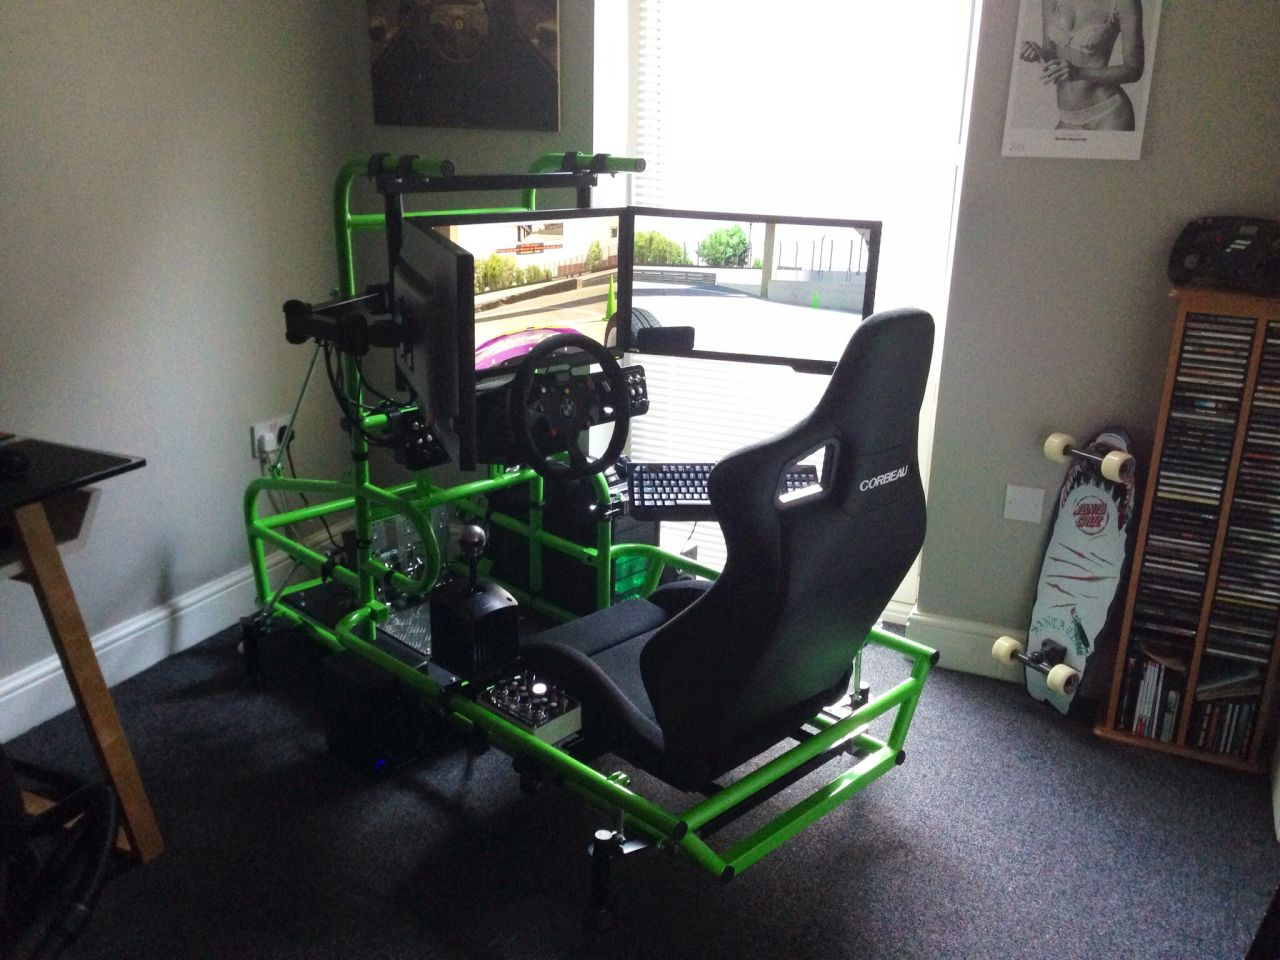 Mr Povey's race simulator